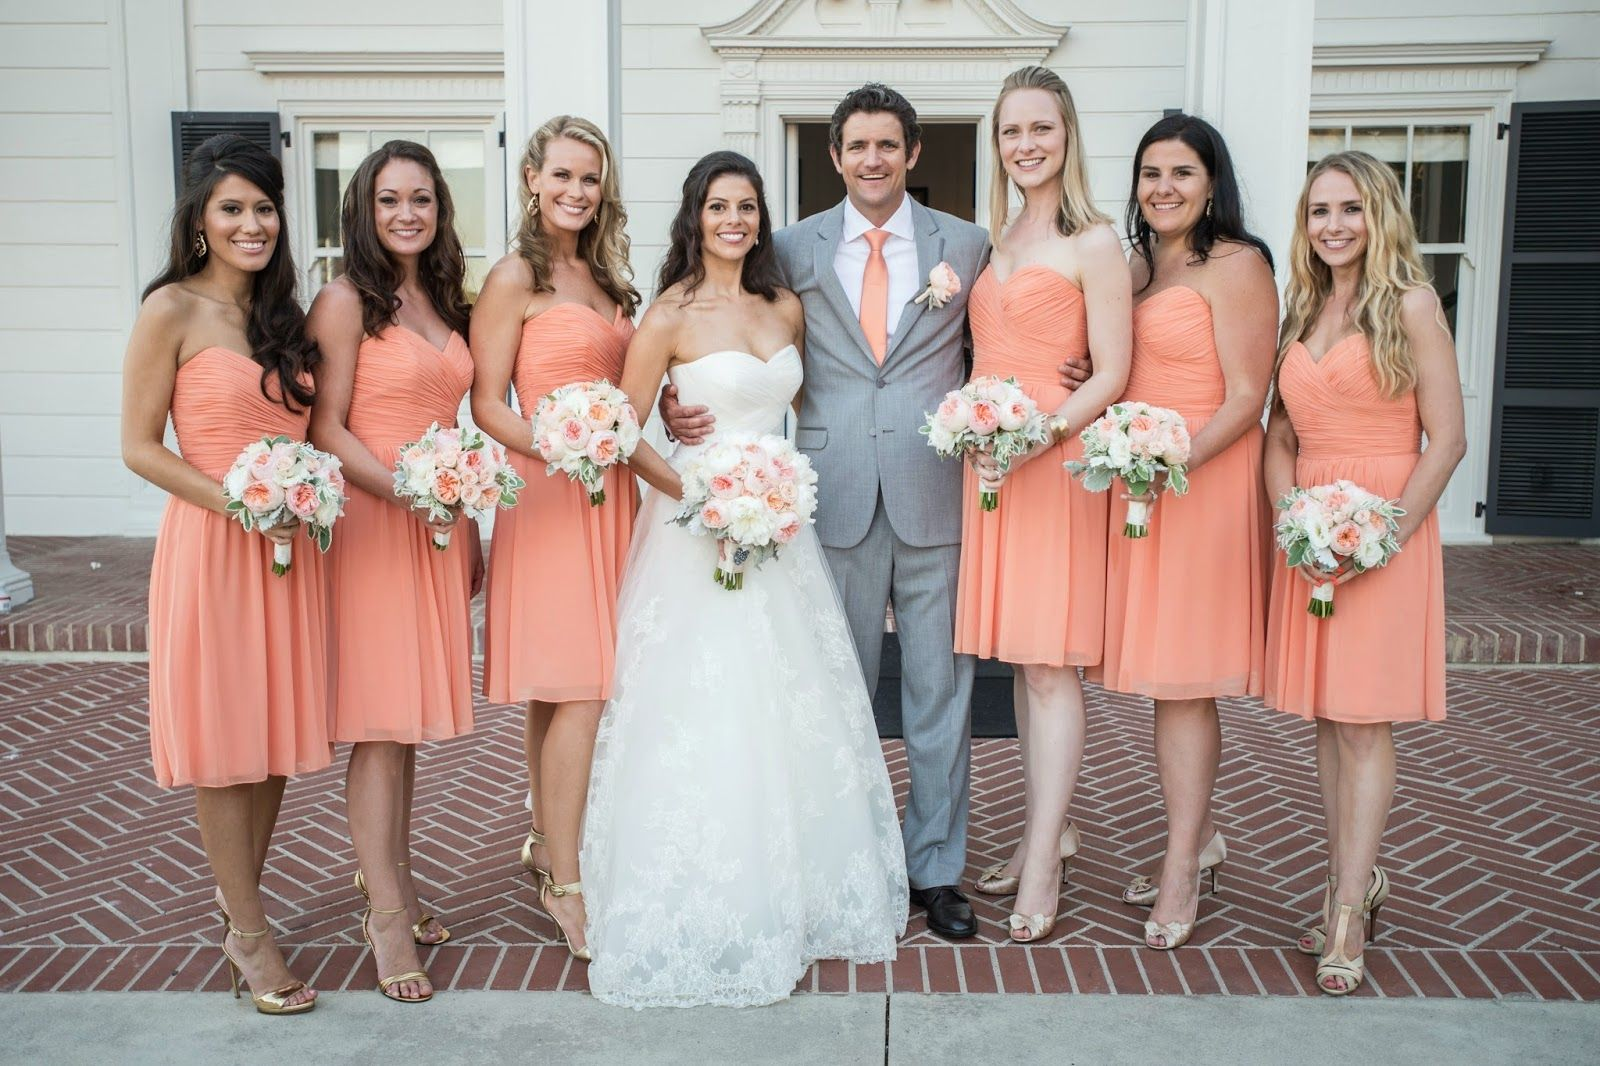 Small Crop Of Peach Colored Dresses Wedding